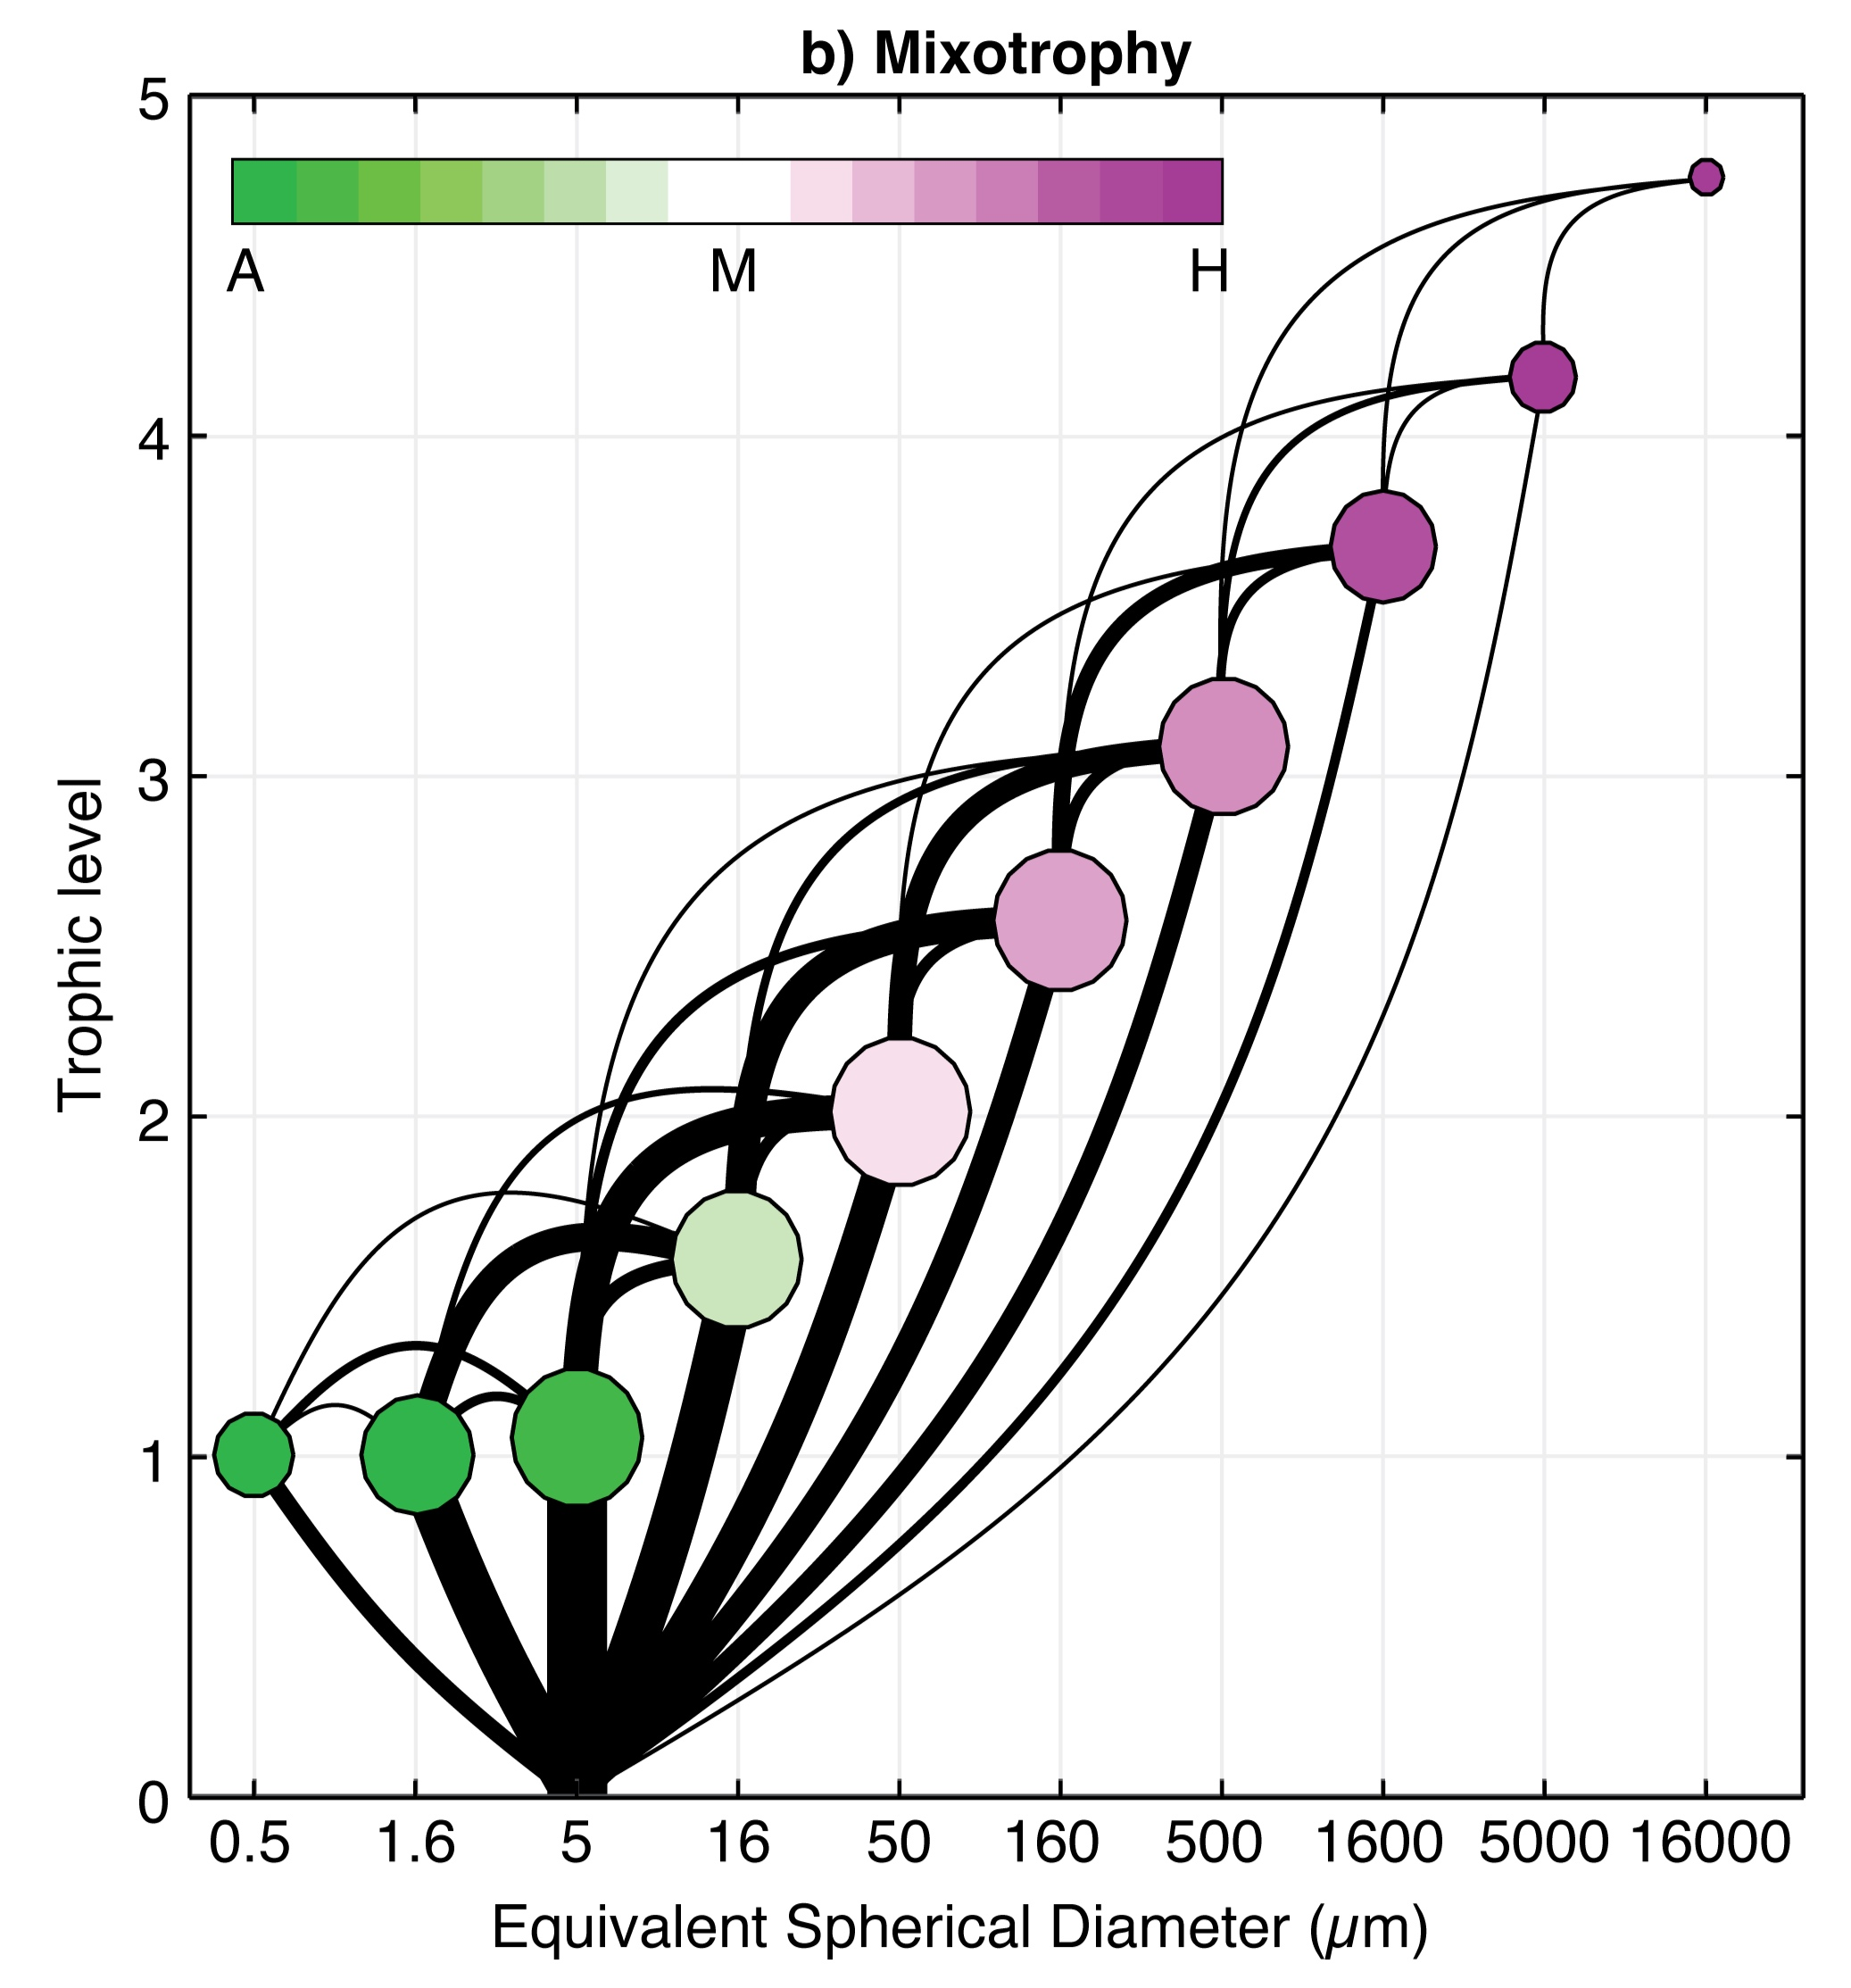 Emergent community structure in a global model with no distinction between autotrophs and heterotrophs.